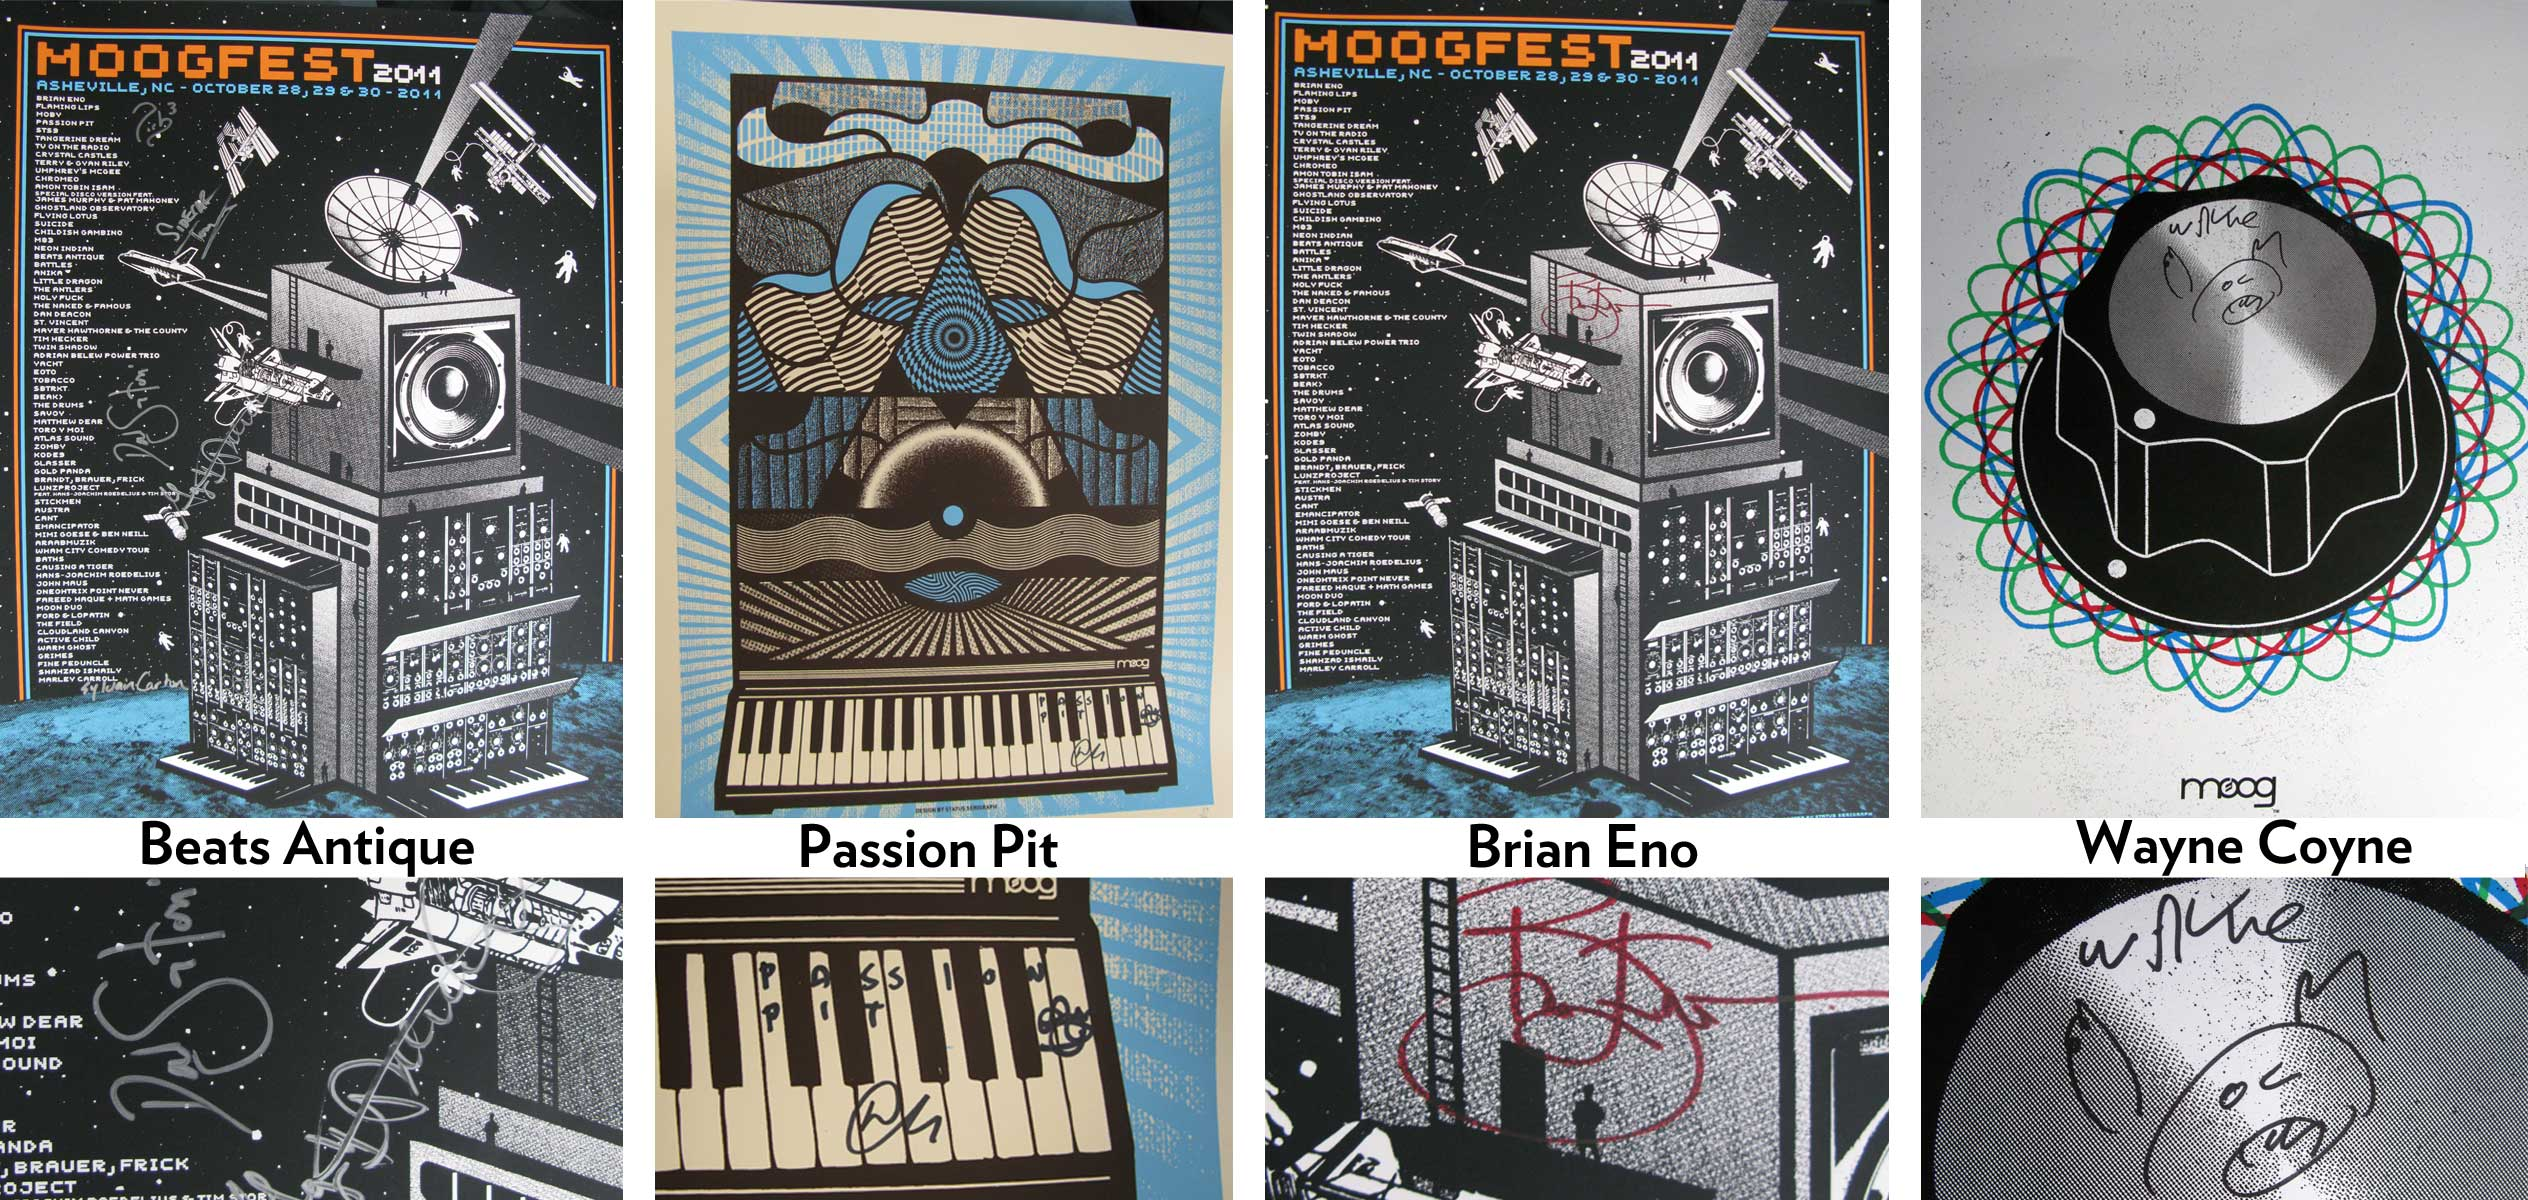 Moogfest posters autographed by legends and rock stars on eBay!